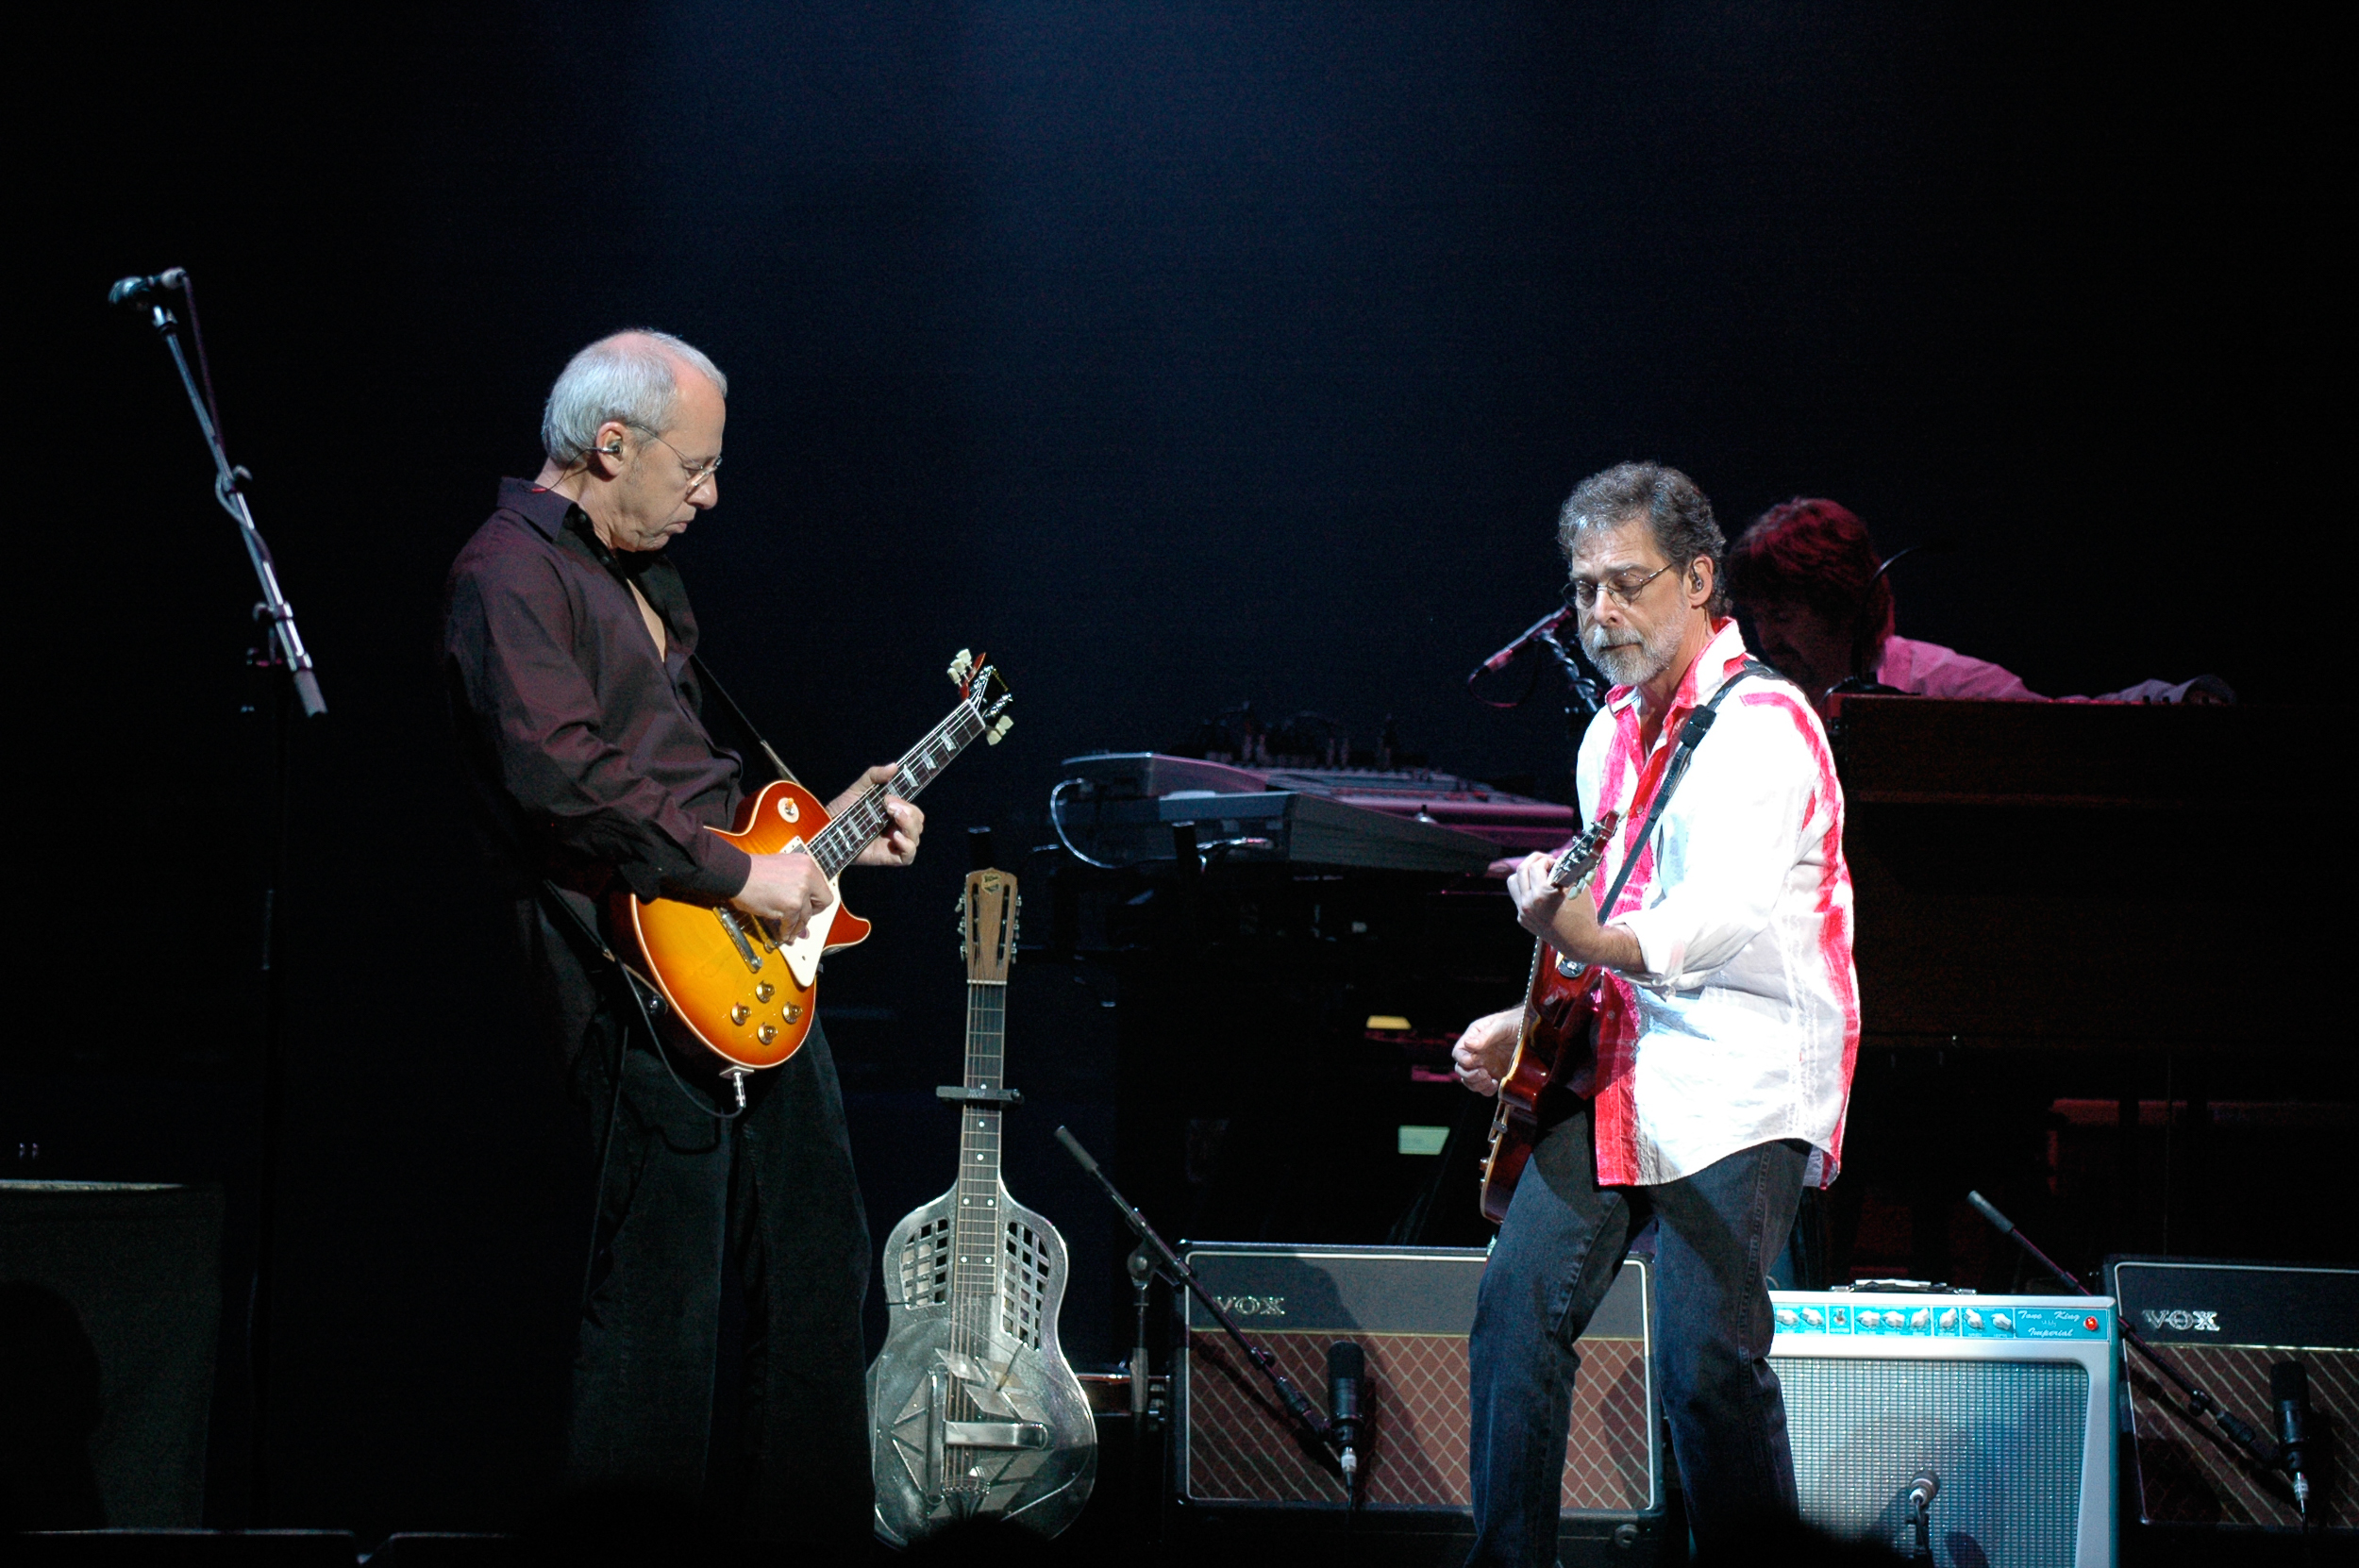 Mark Knopfler and Richard Bennett